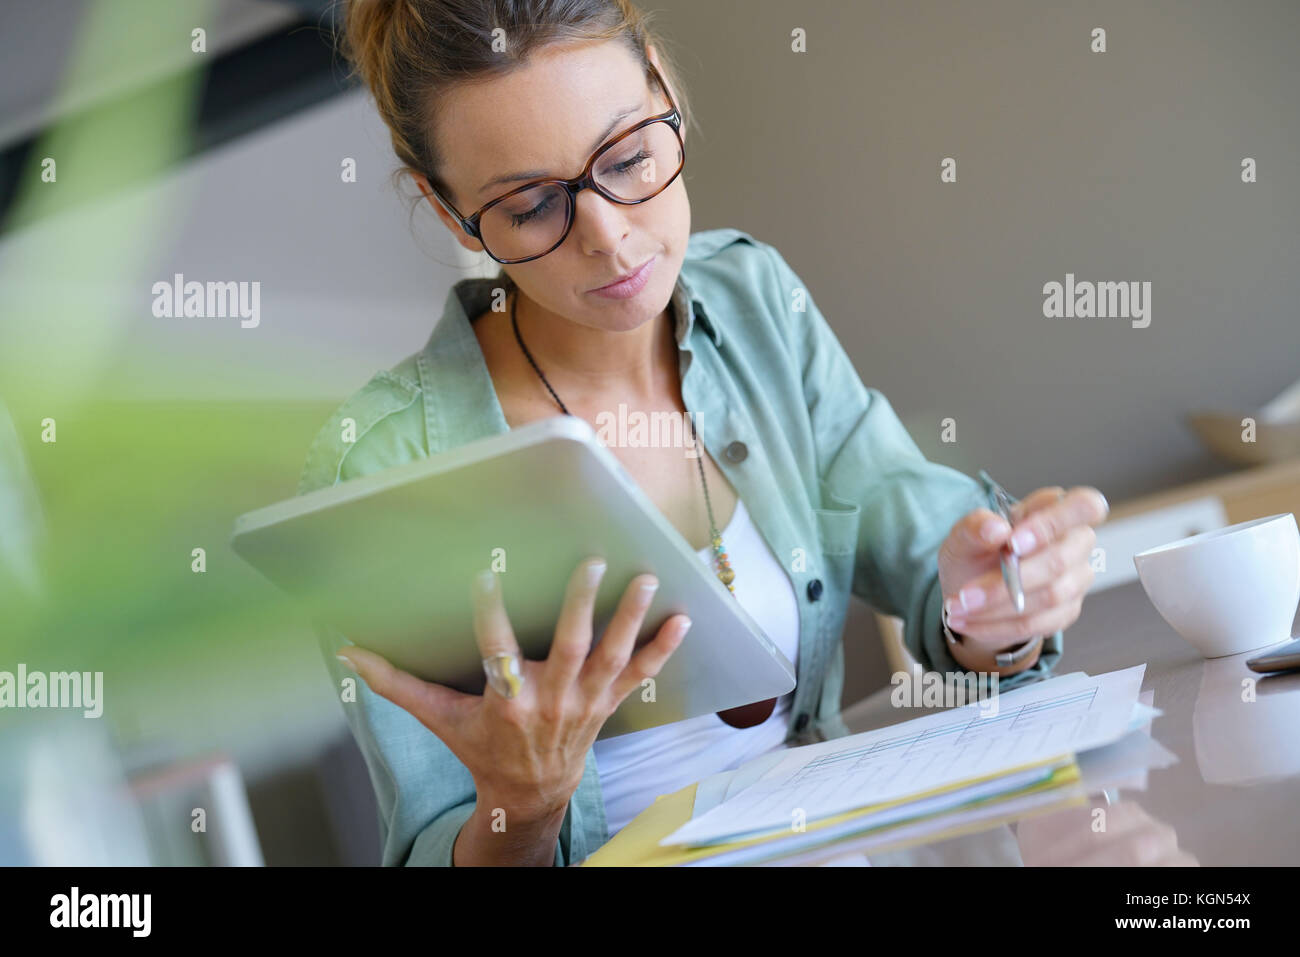 Trendy designer girl at home working on digital tablet - Stock Image